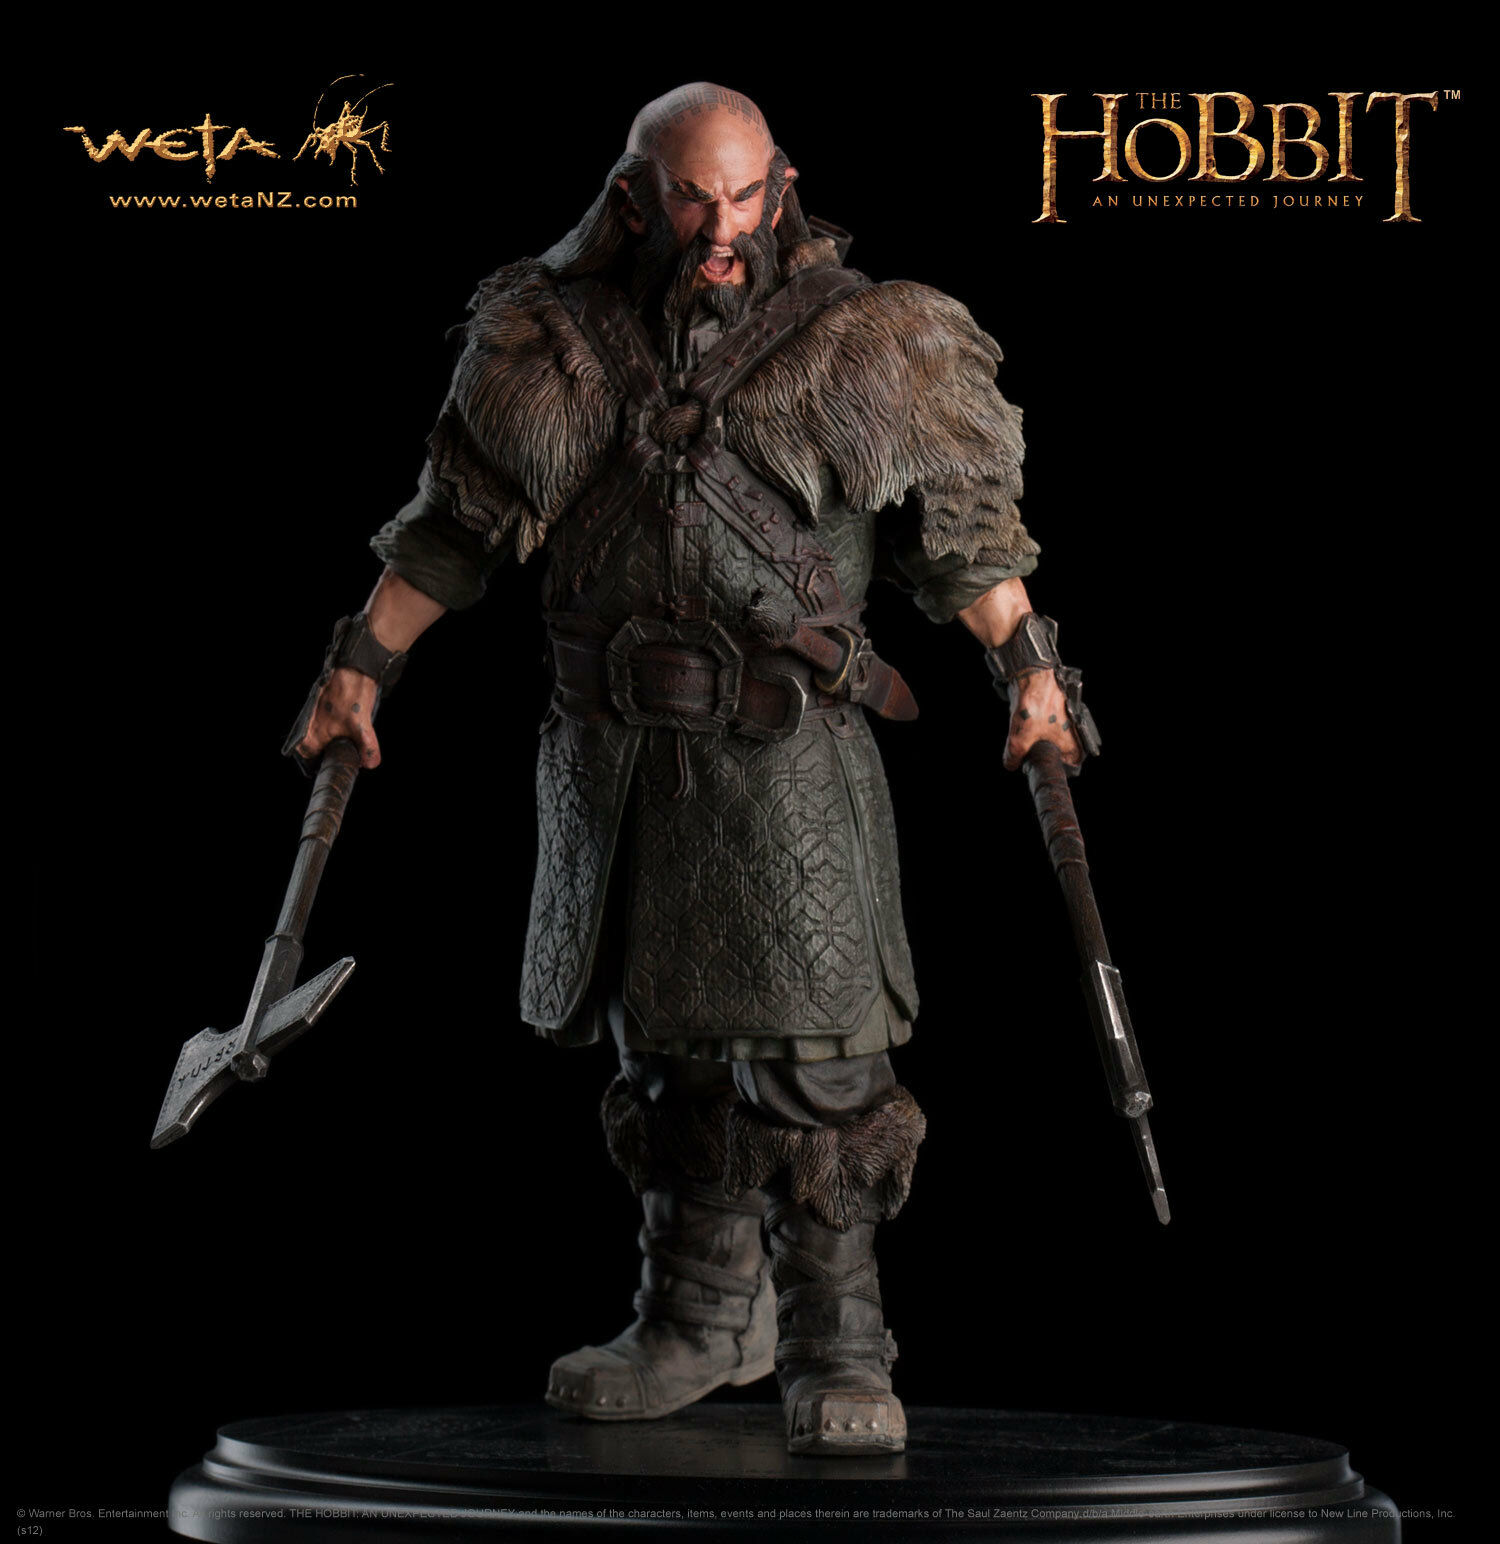 THE HOBBIT DWALIN SIXTH SCALE 1 6 STATUE BY WETA